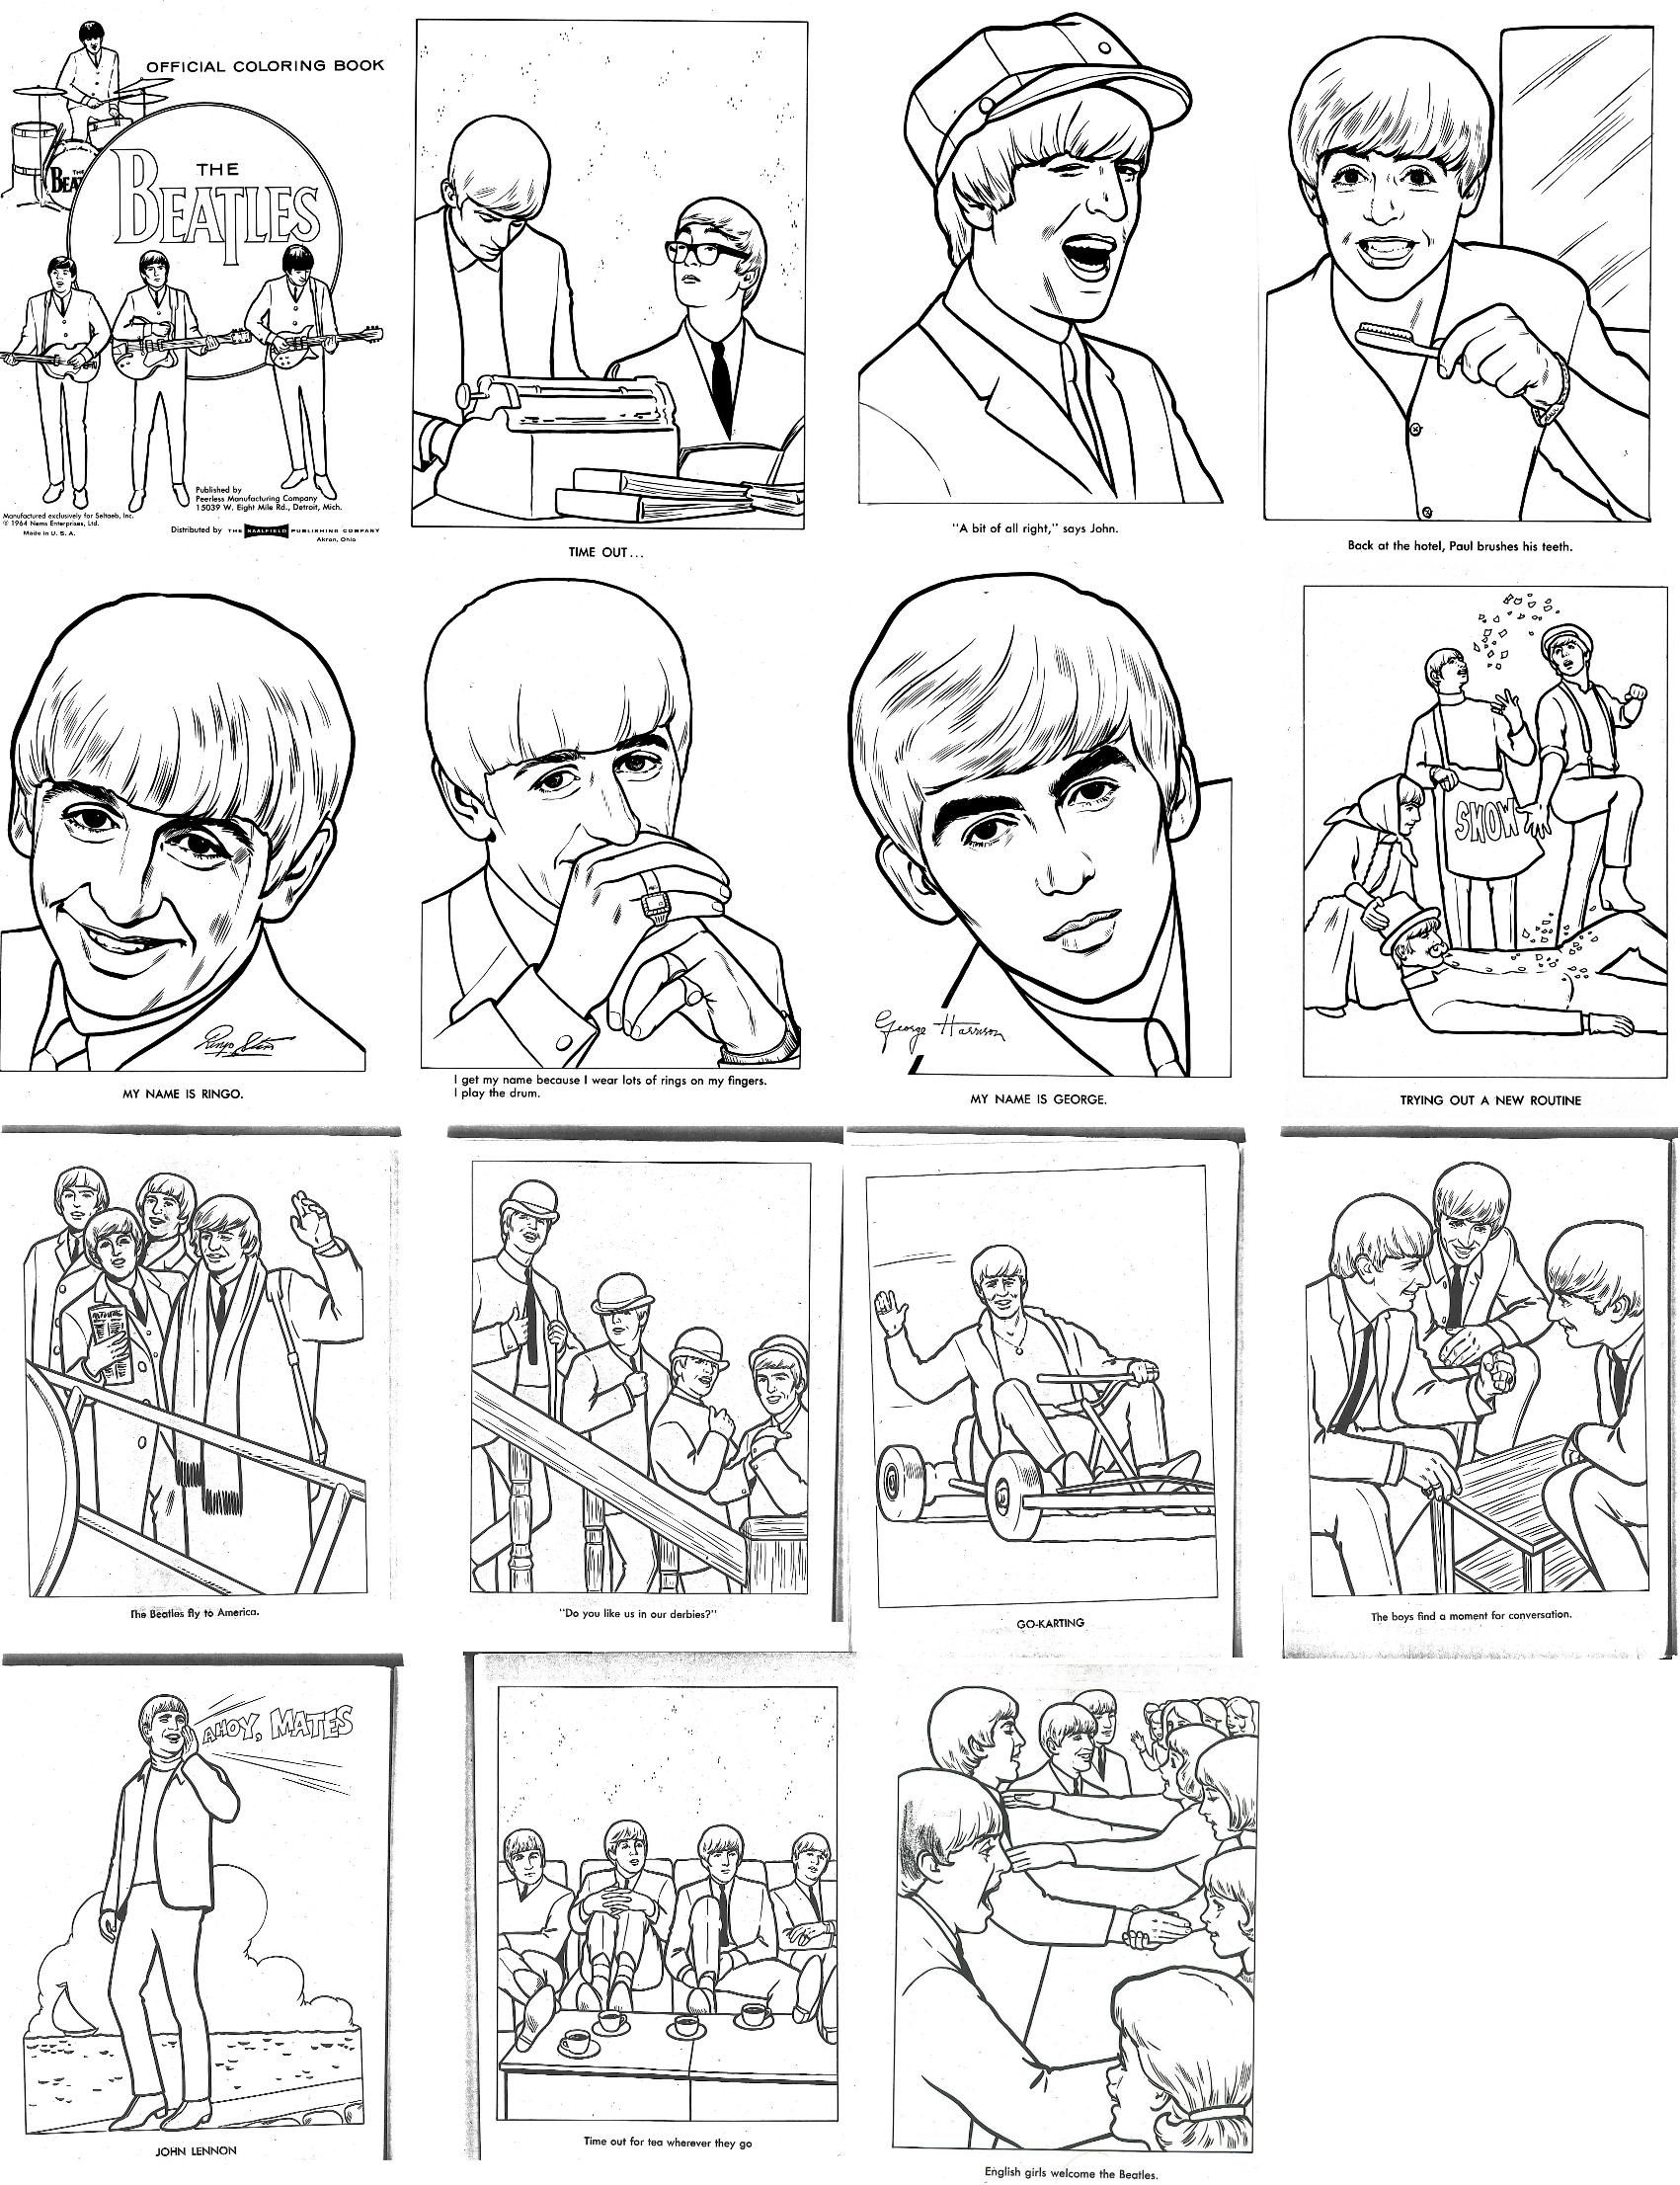 the beatles coloring book from the 1960 u0026 39 s  fab